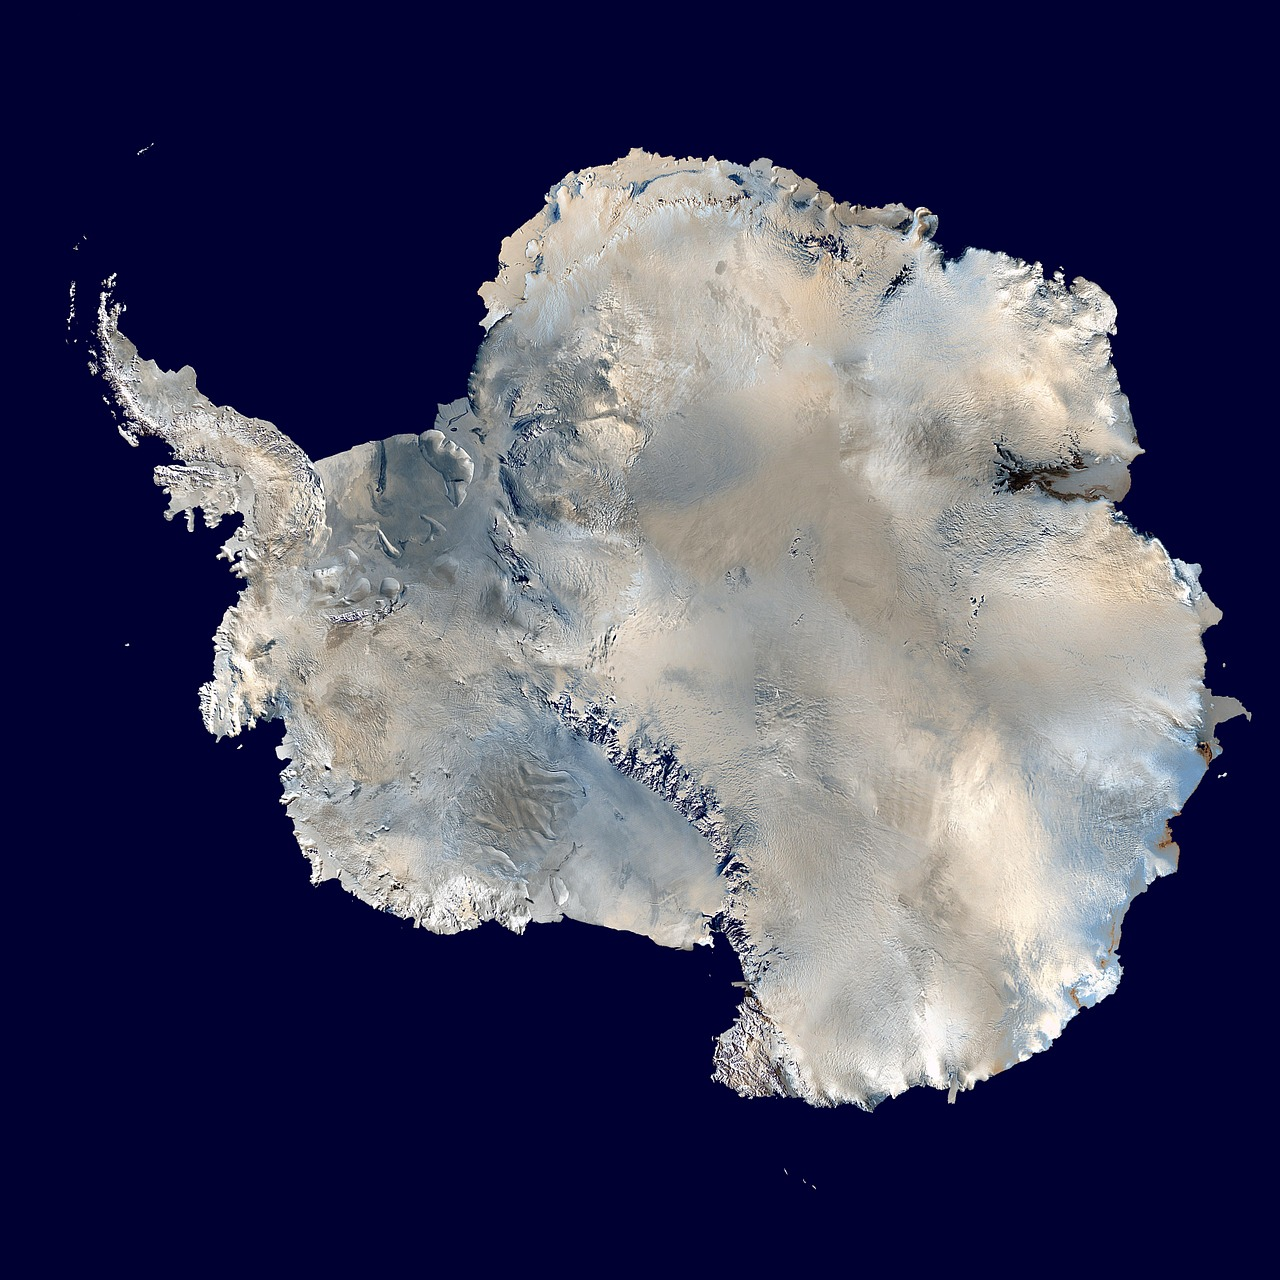 antarctica south pole continent free photo